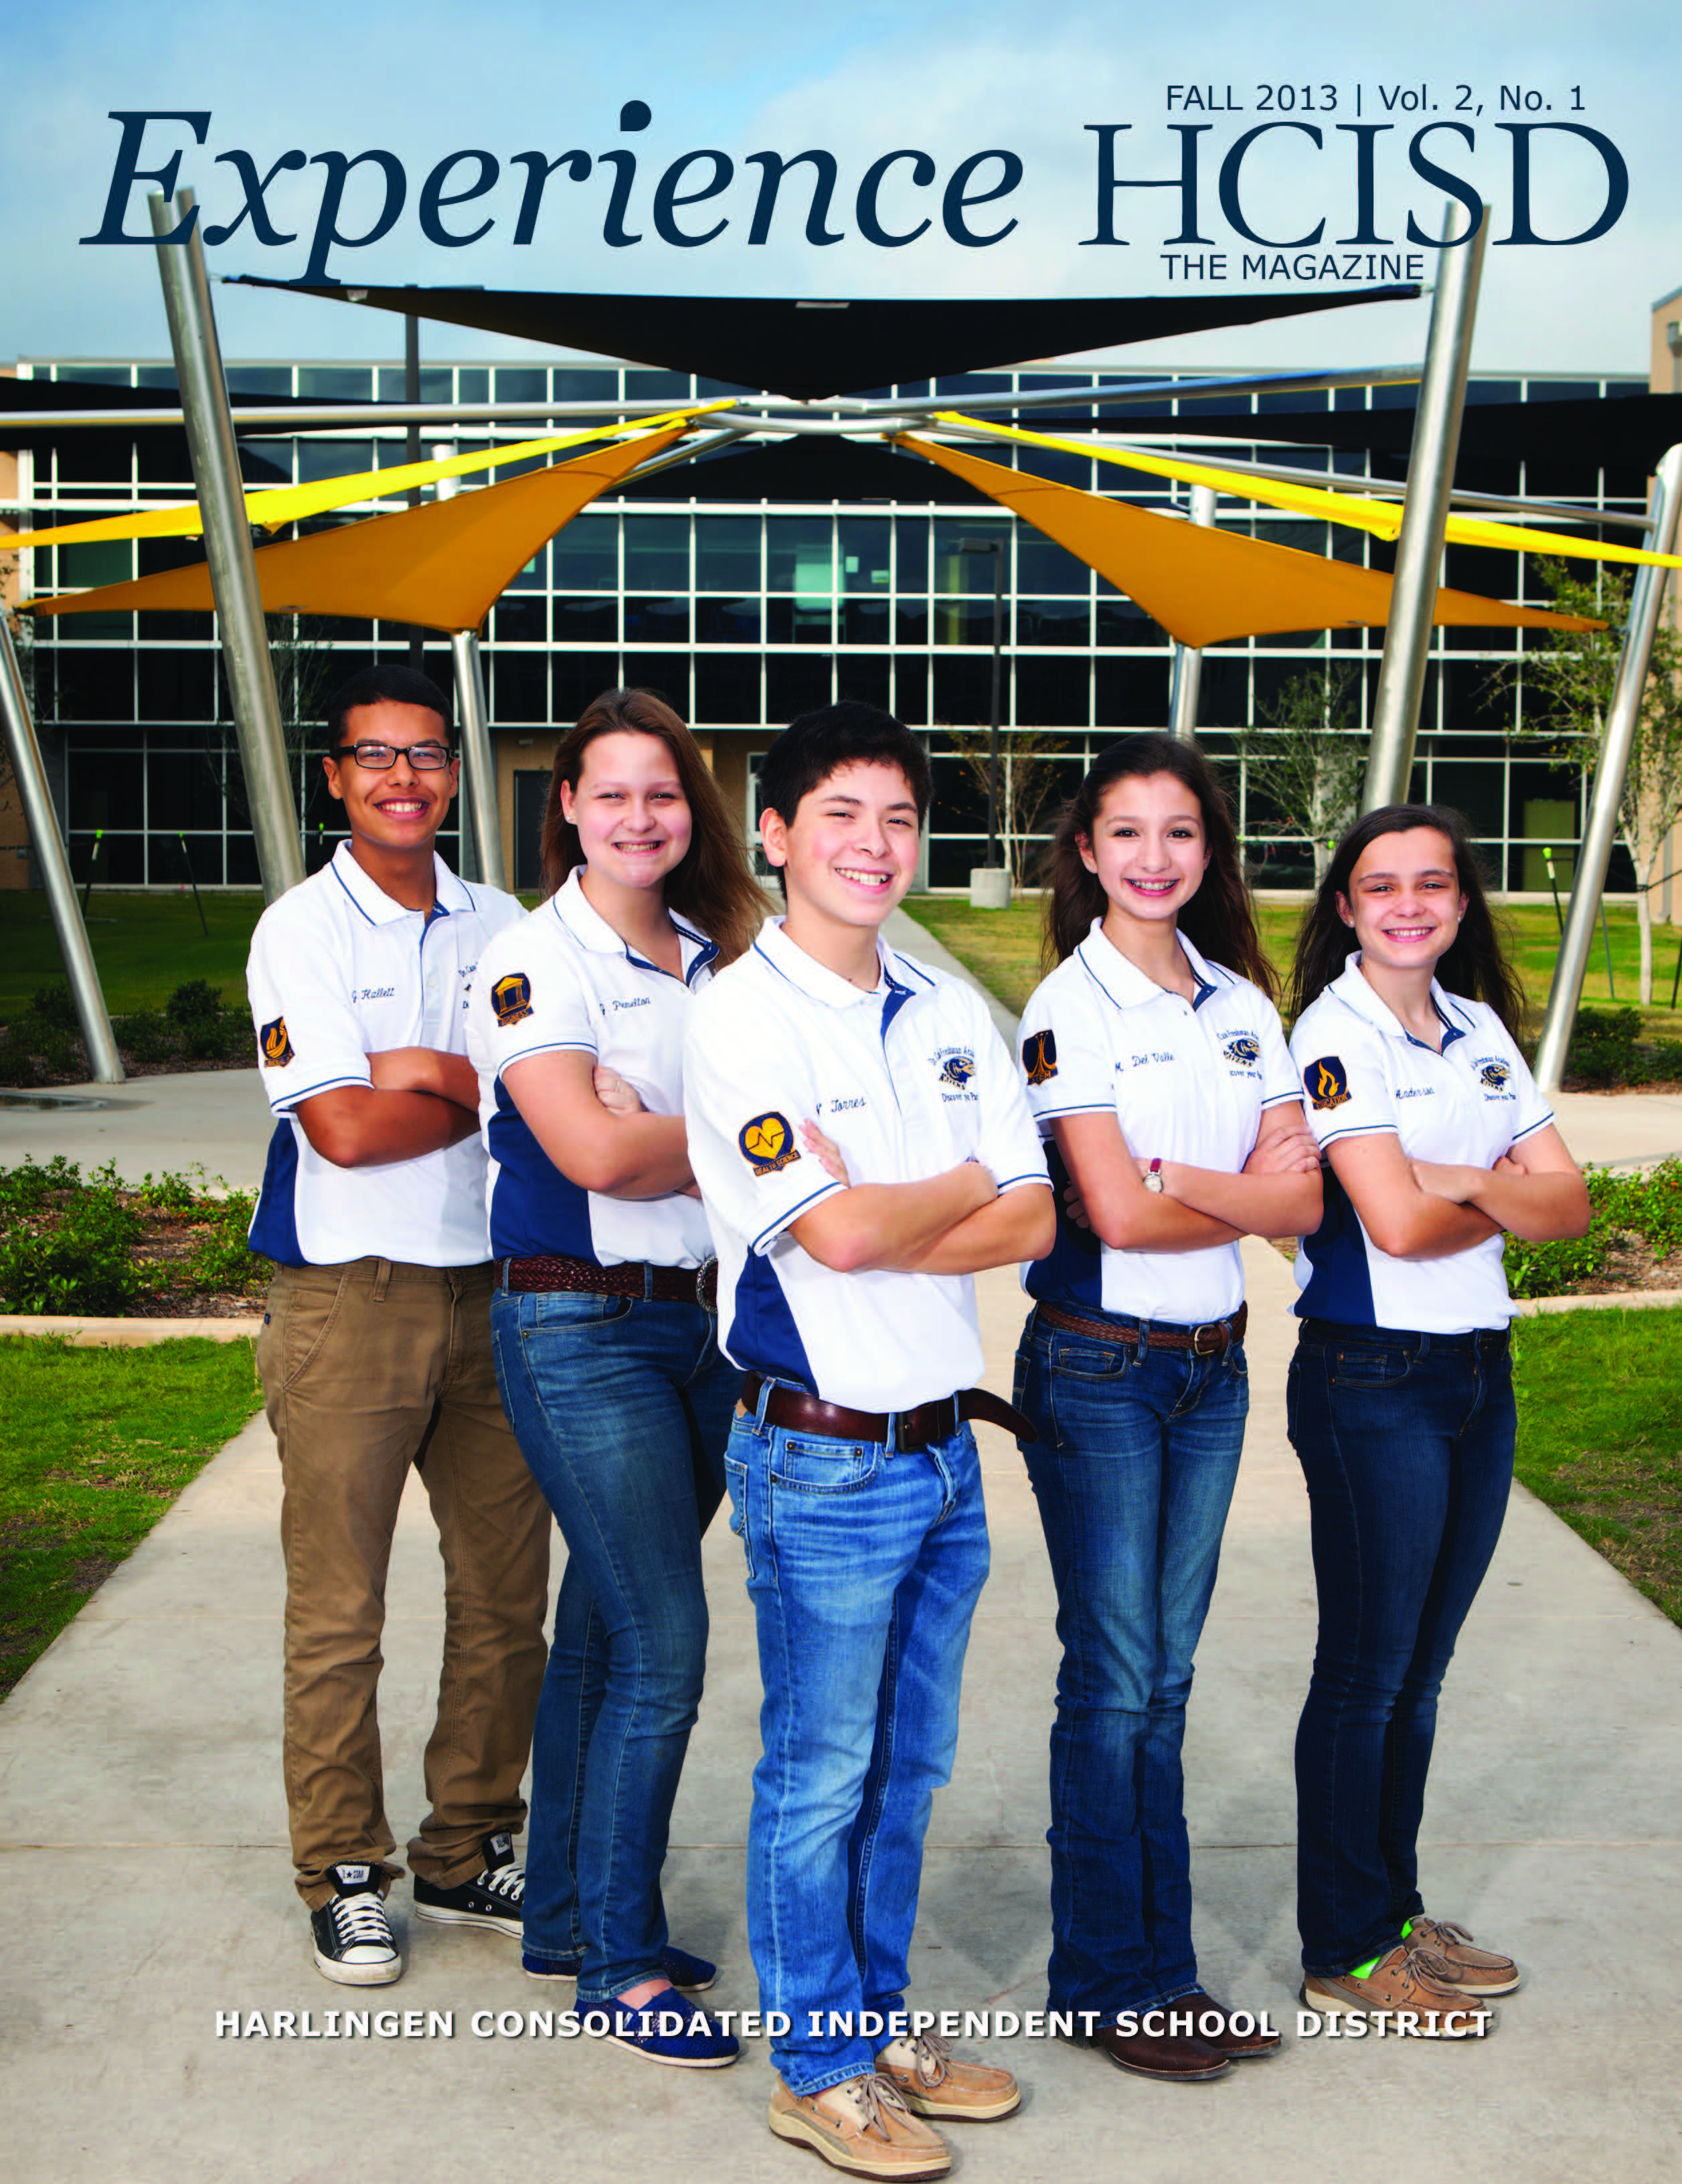 HCISD releases issue 3 of Experience HCISD The Magazine